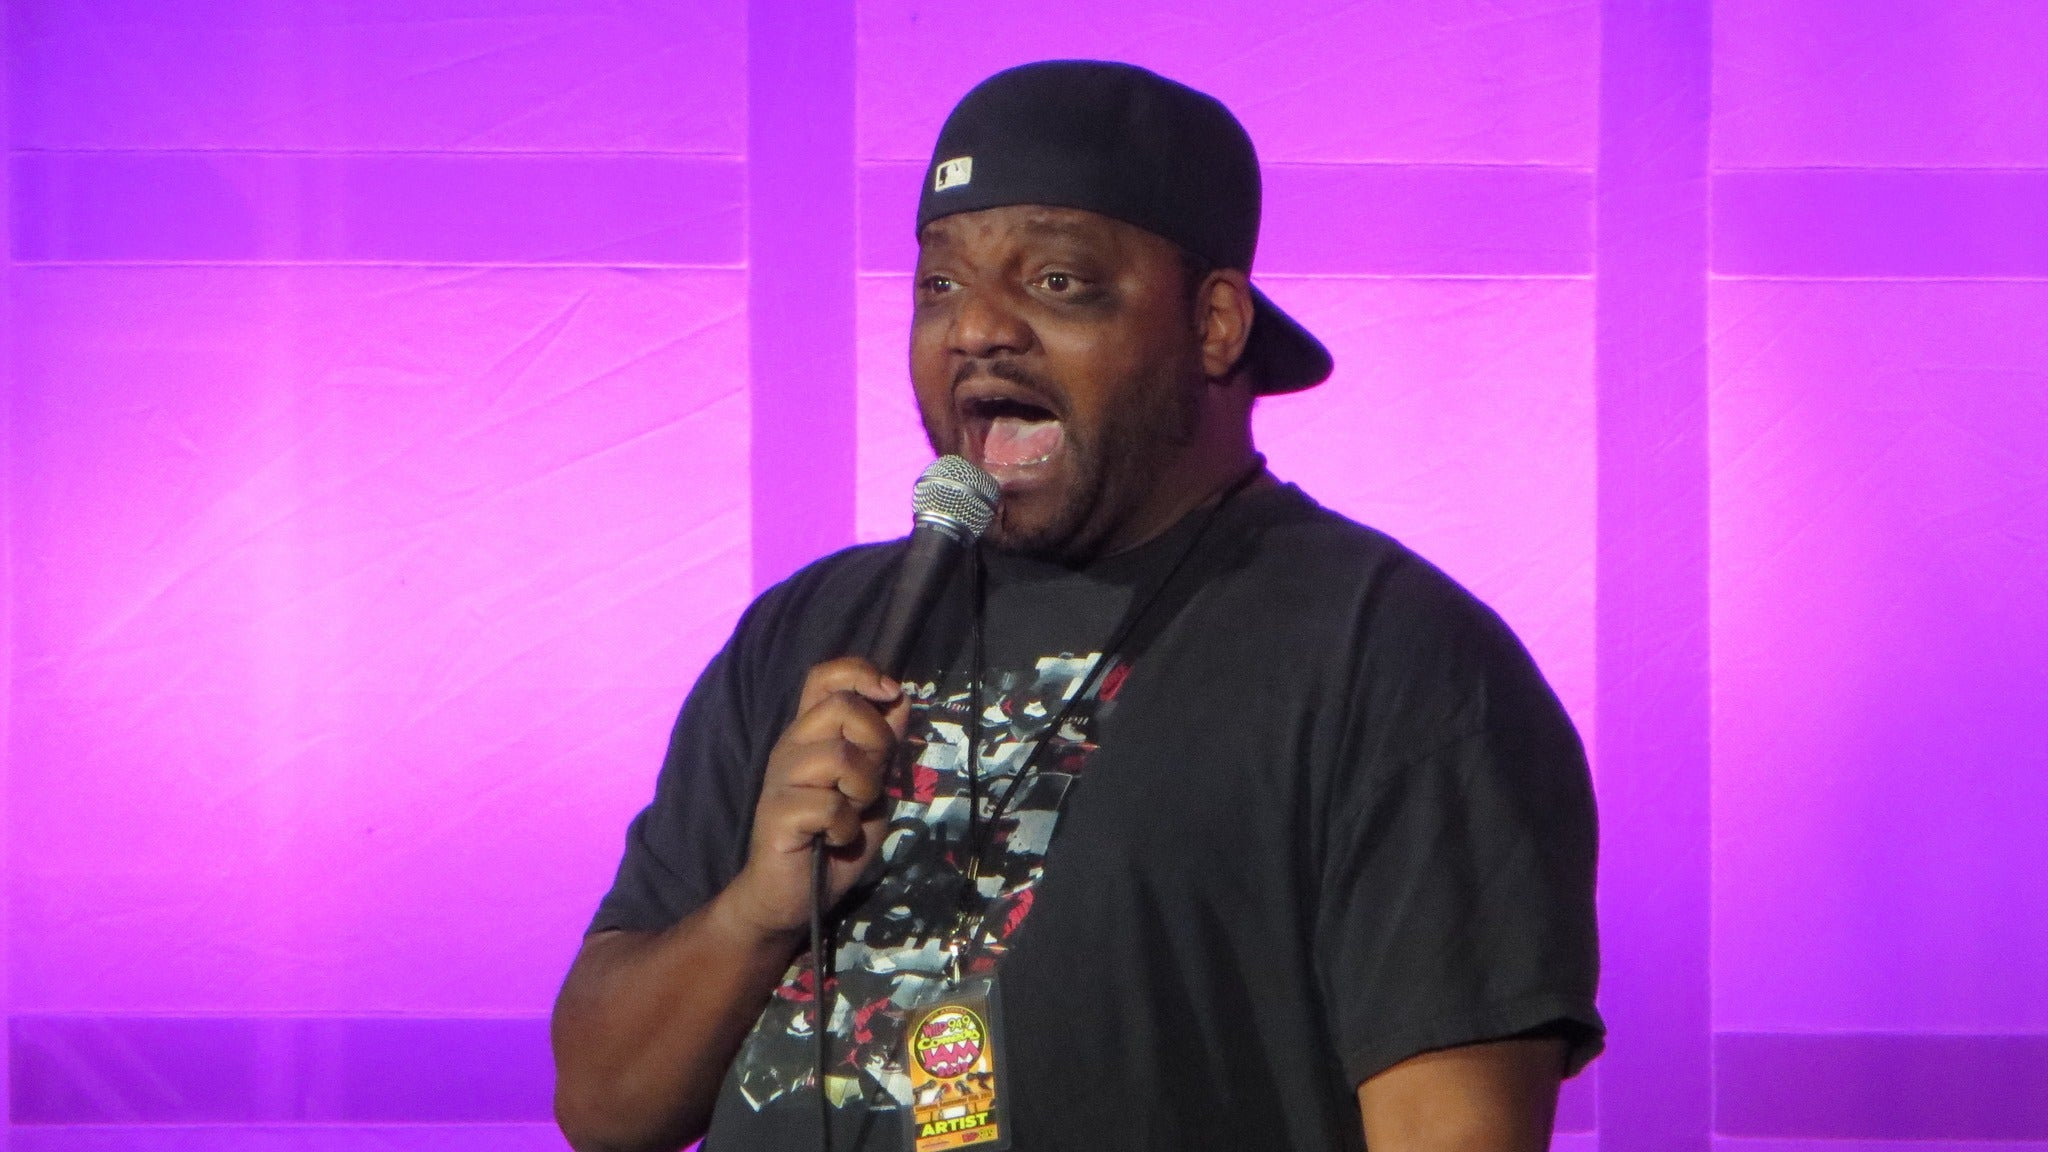 Aries Spears at Oxnard Levity Live